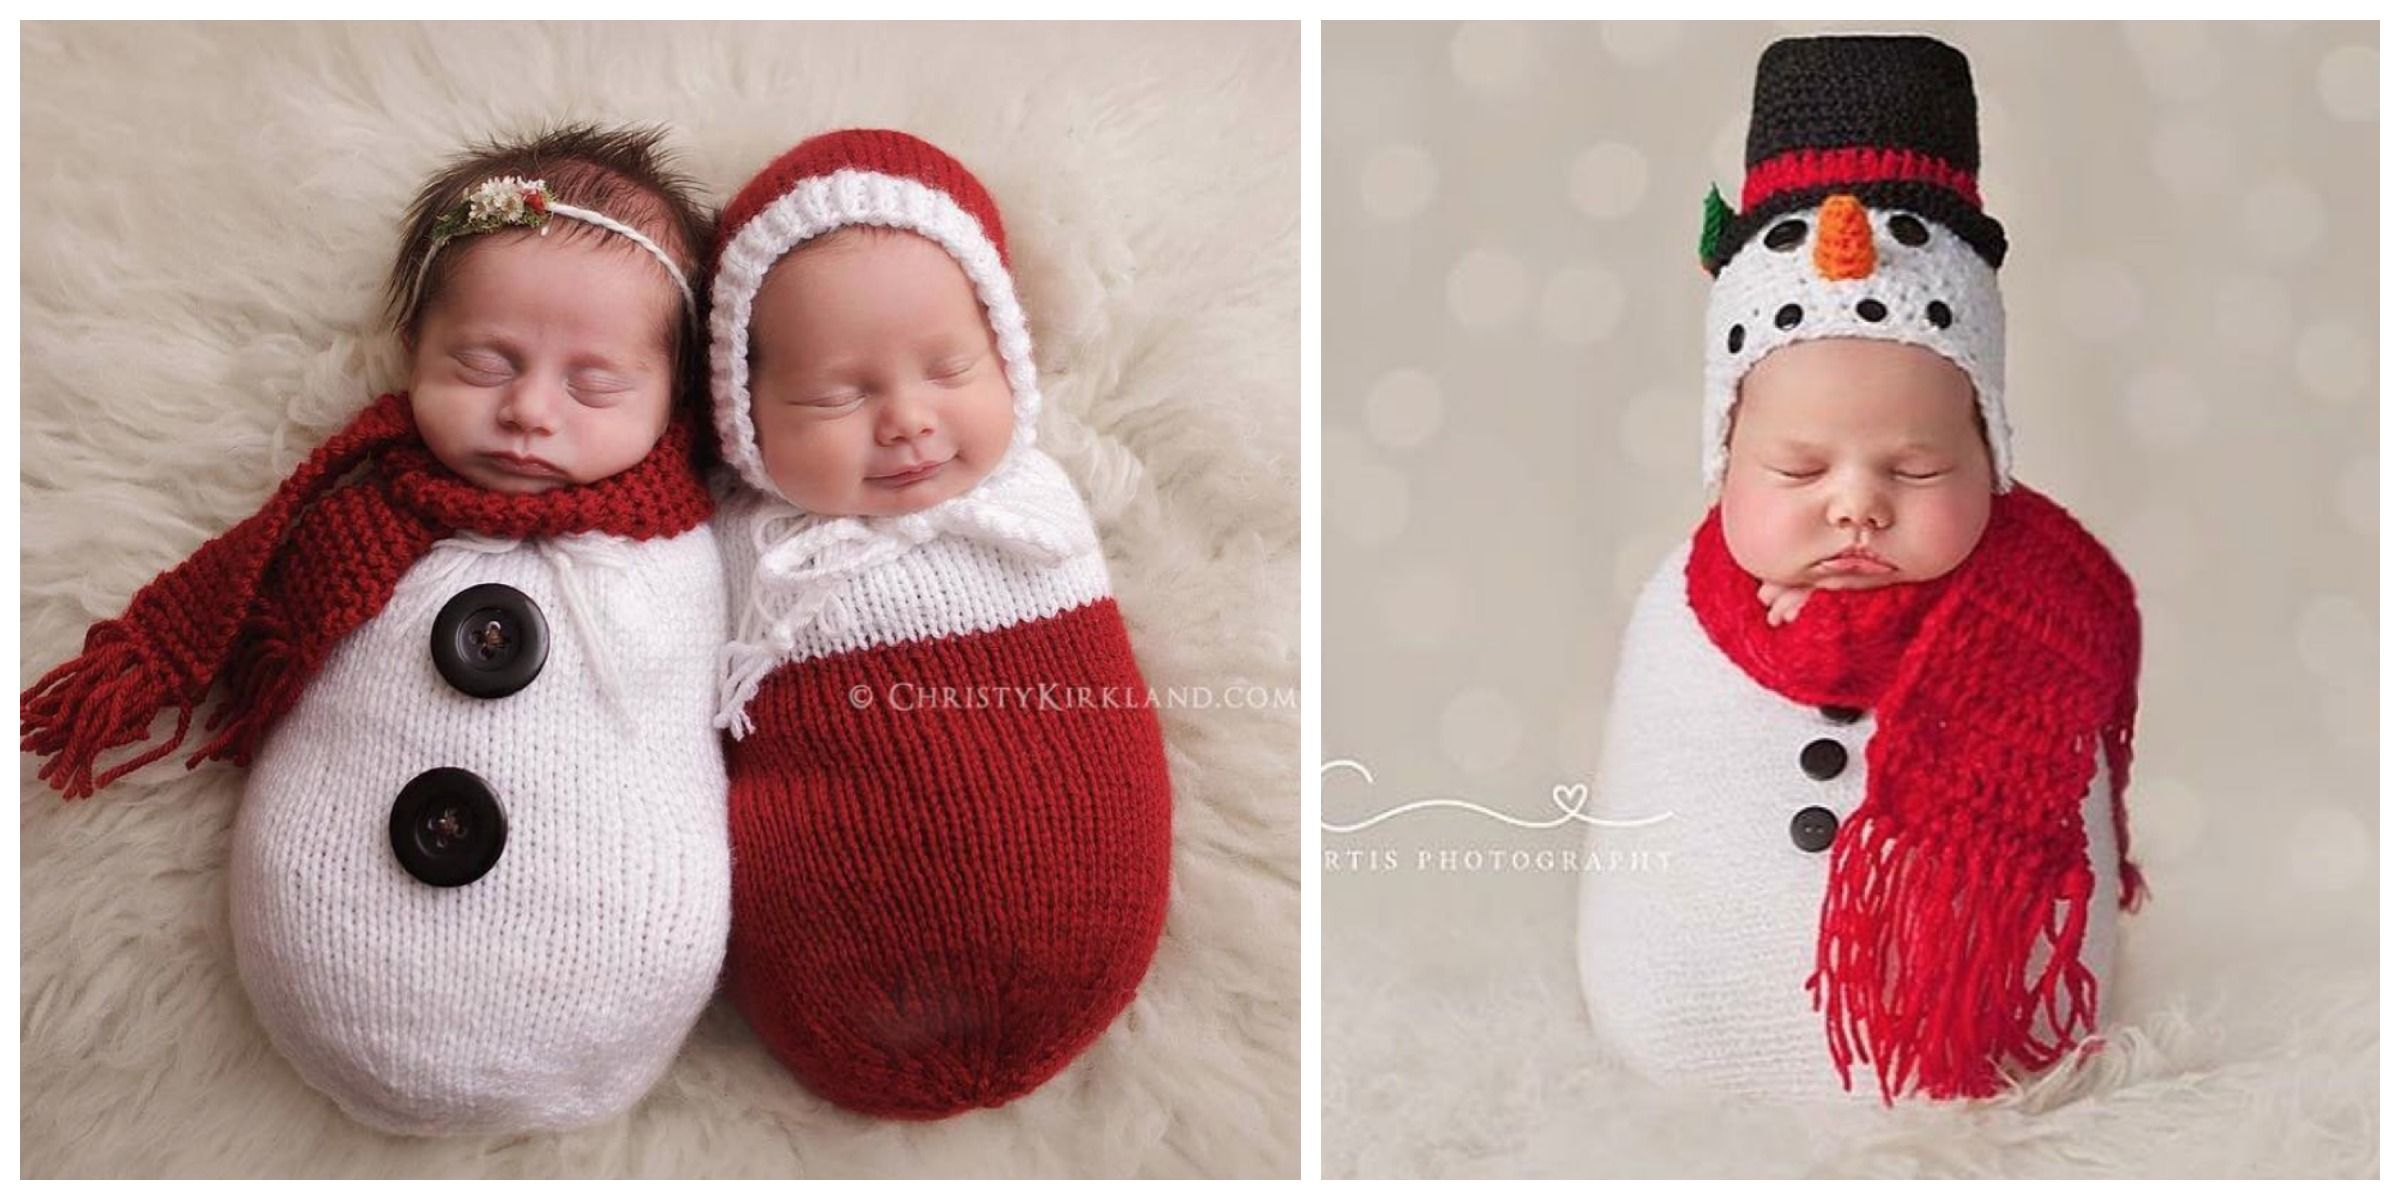 cfead6d11996 Knitted Christmas Outfits For Babies — Cute Baby Christmas Photos